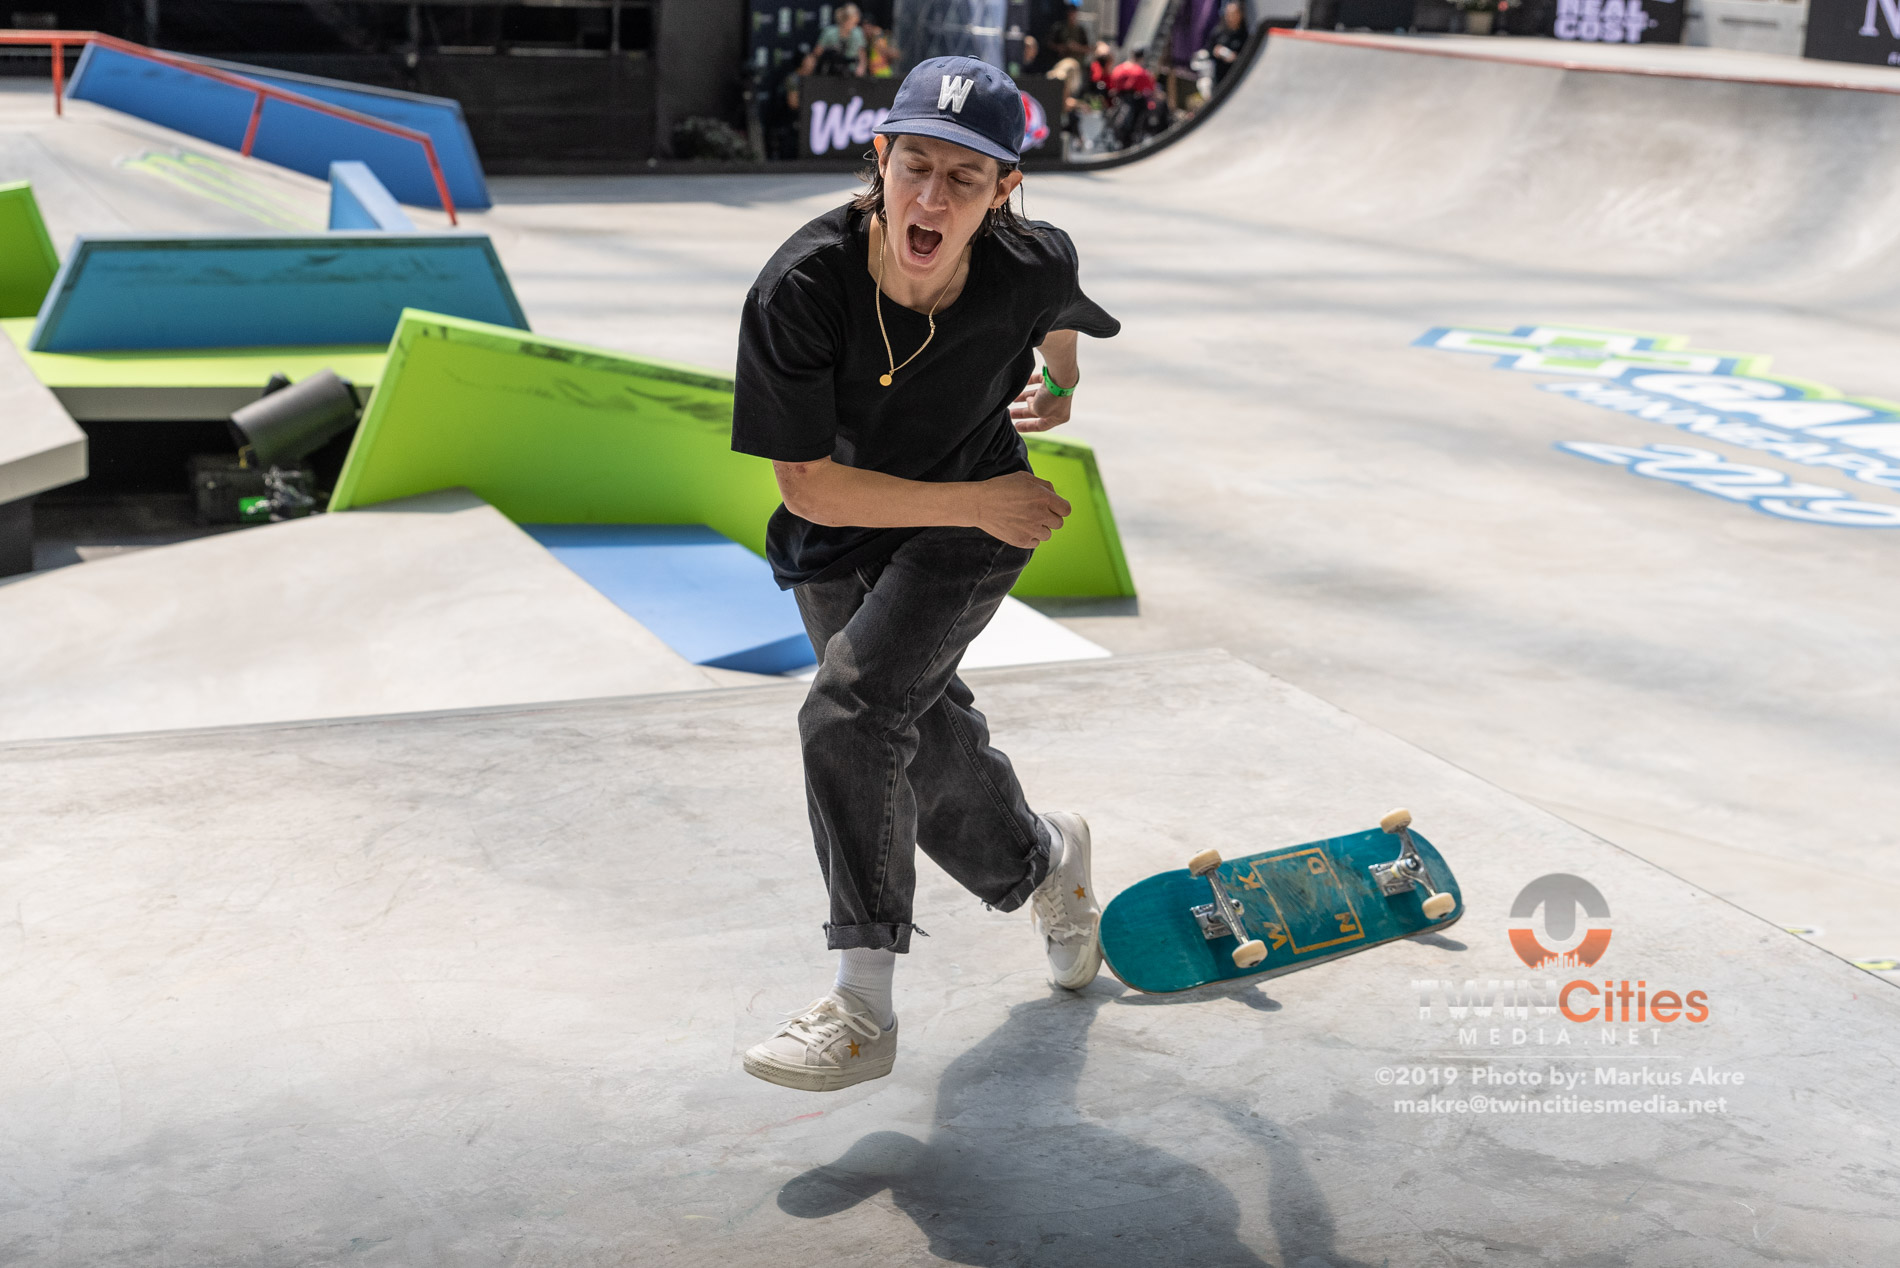 2019-X-Games-Day-4-Women-Skateboard-Street-5